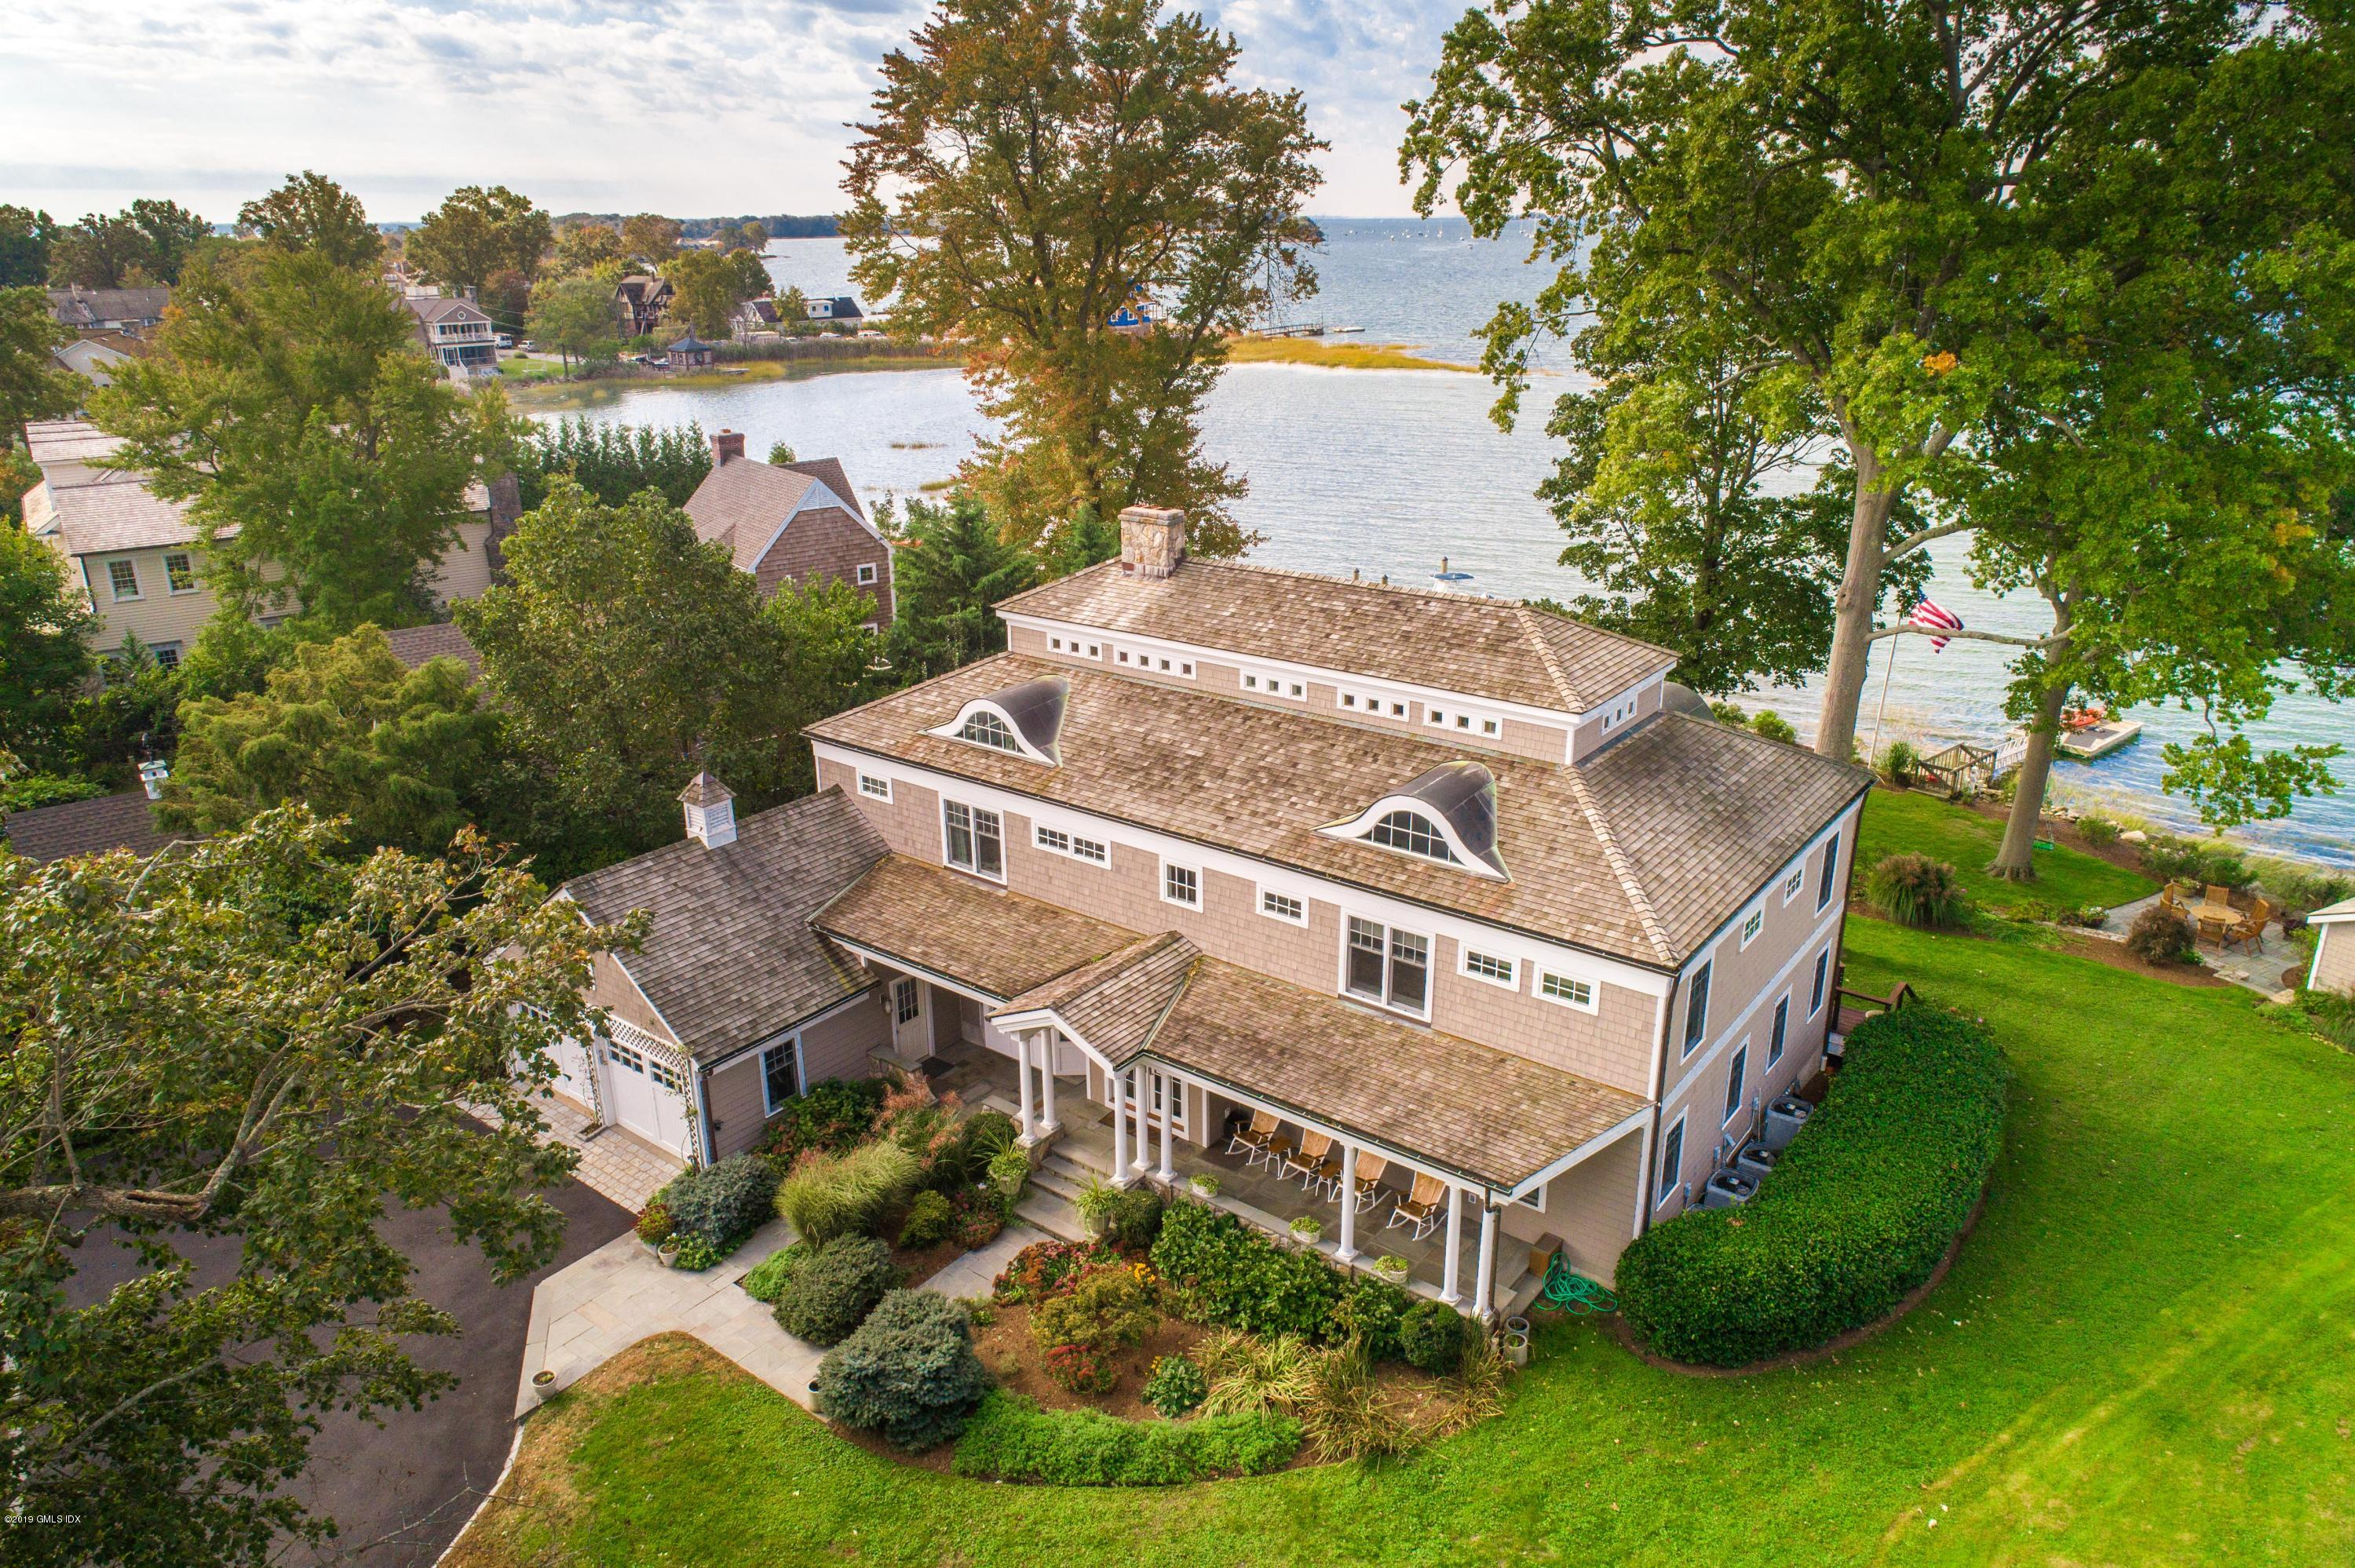 7 Bryon Road,Old Greenwich,Connecticut 06870,6 Bedrooms Bedrooms,5 BathroomsBathrooms,Single family,Bryon,107265